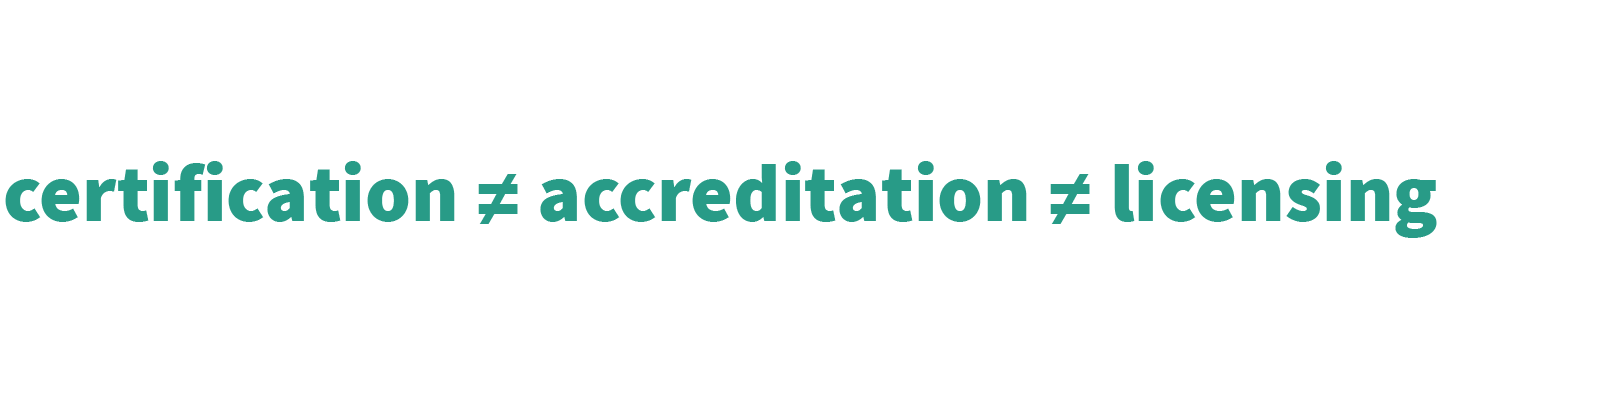 certification is not accreditation nor licensing